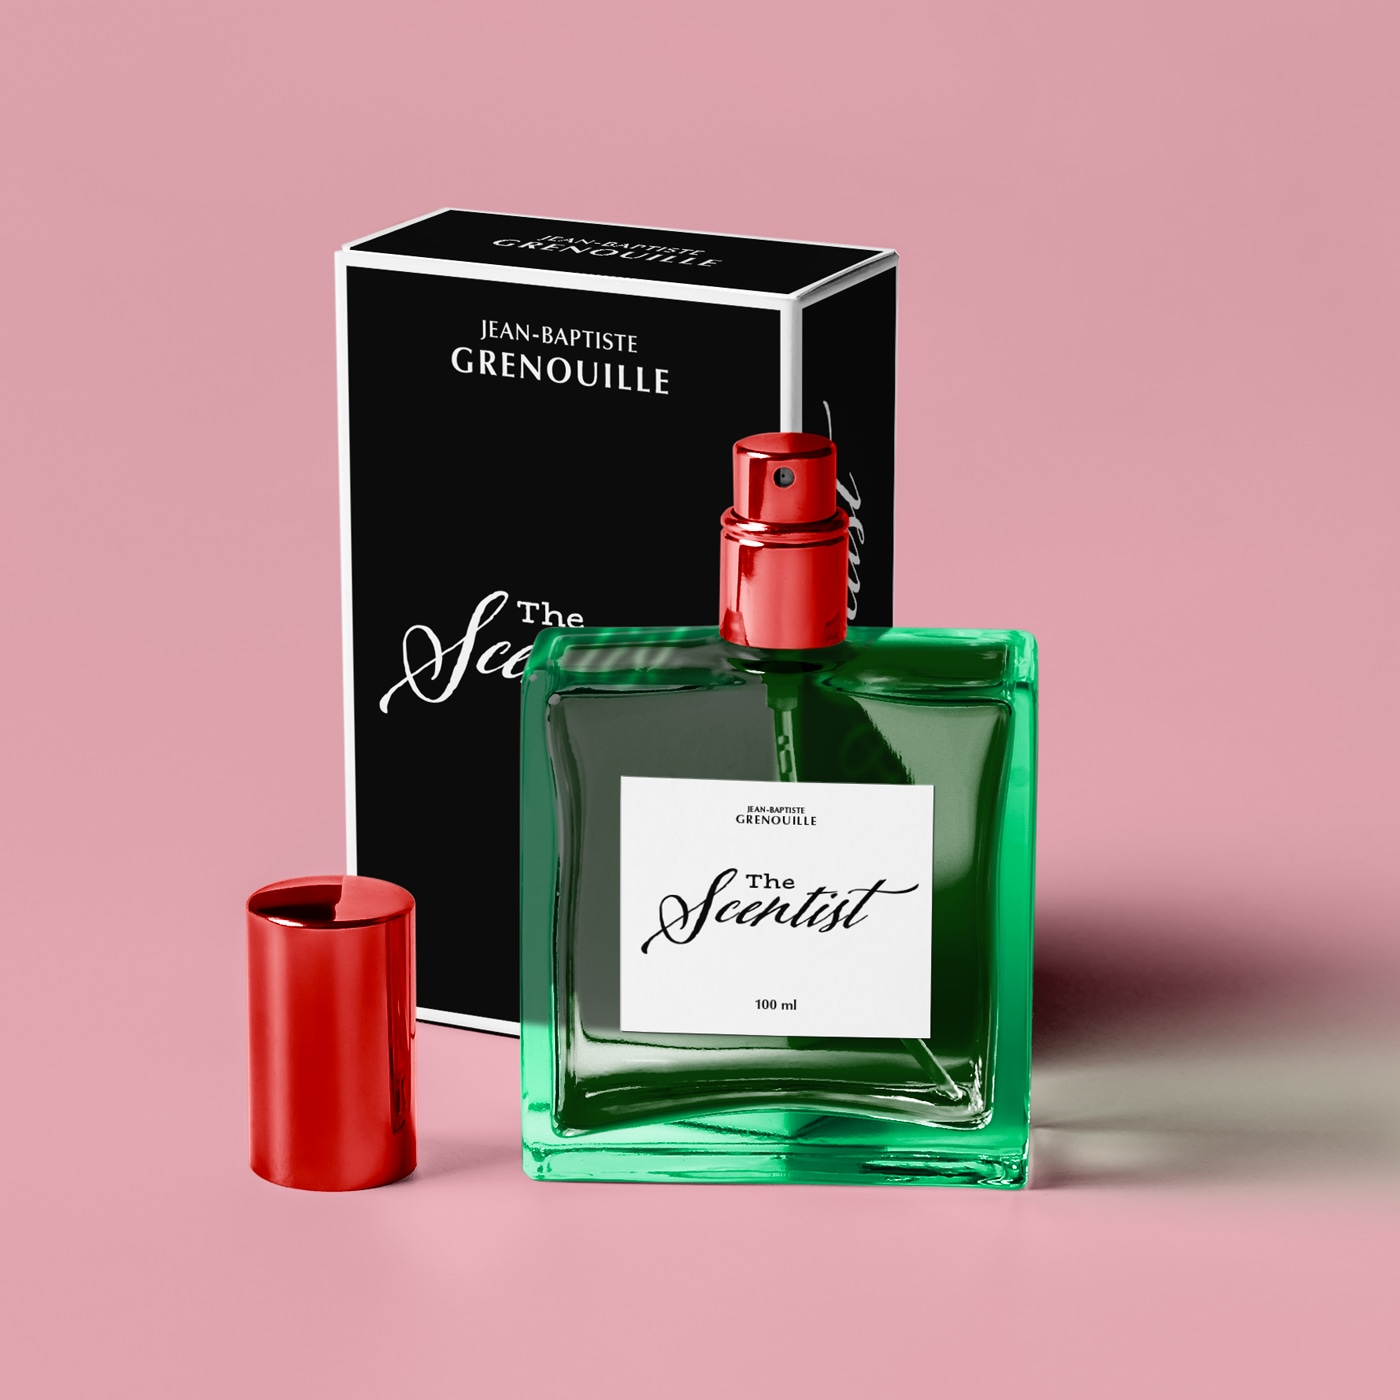 verge-fake-ad-perfume-2